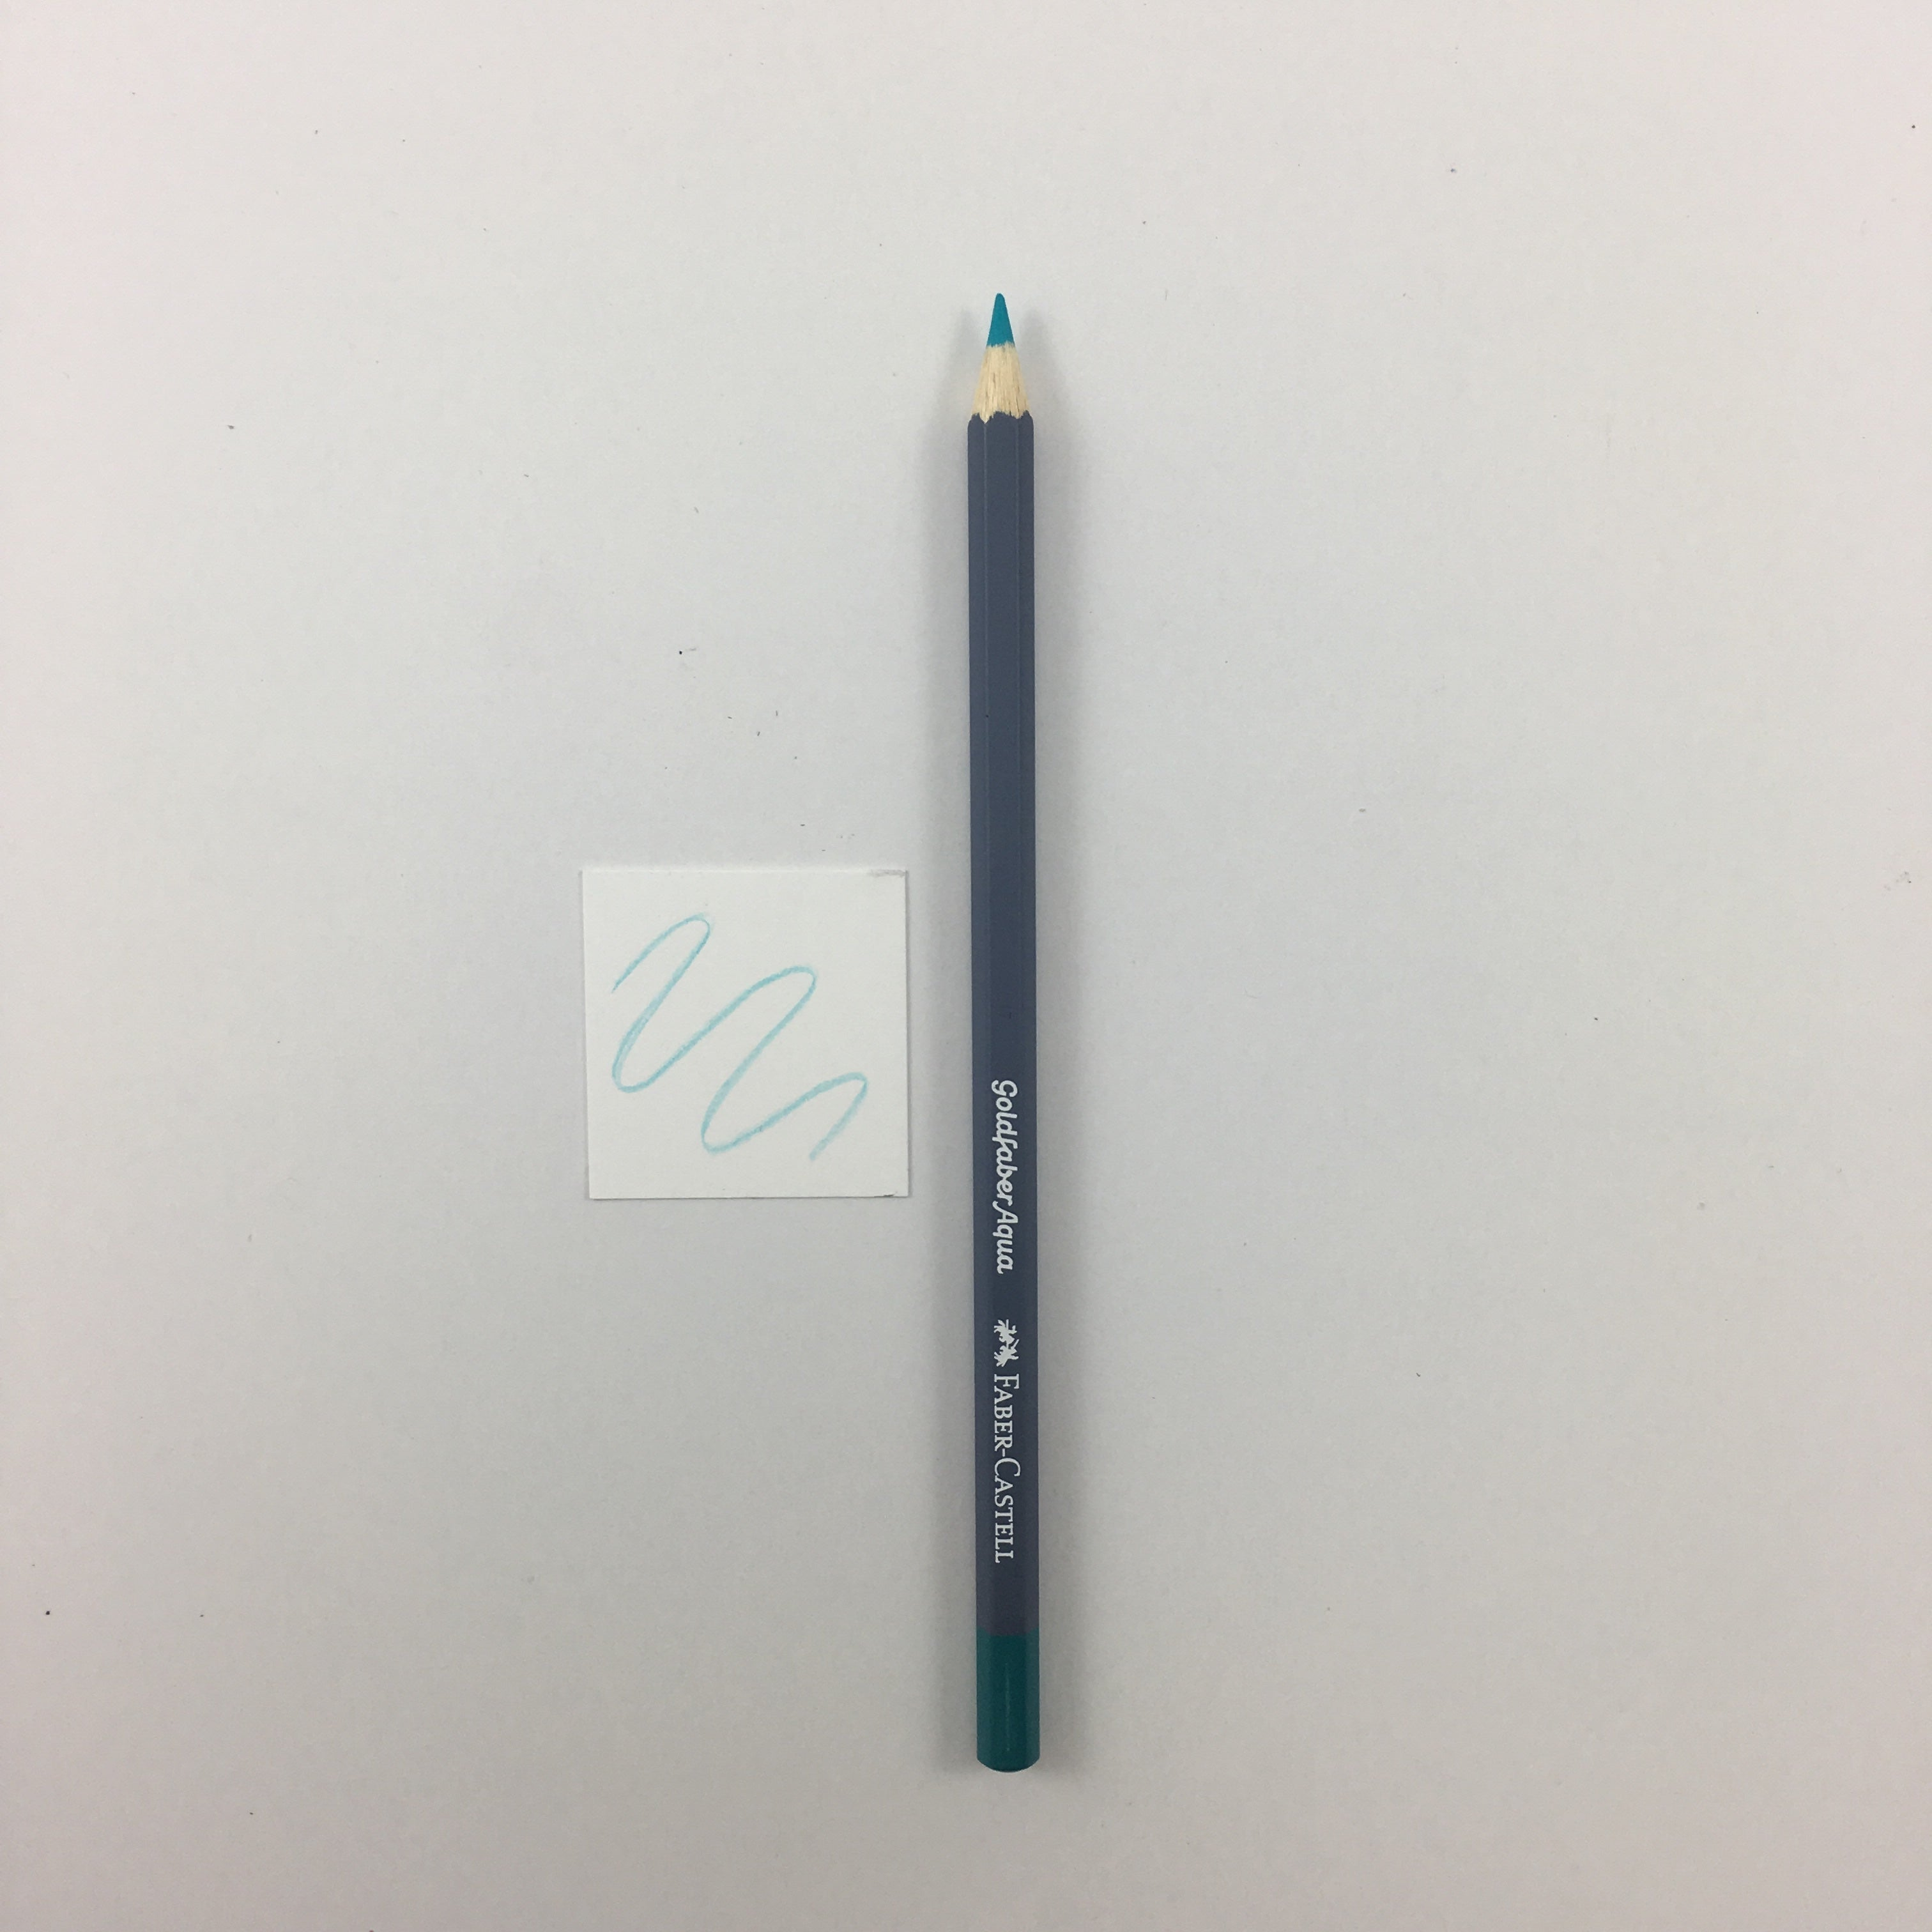 Faber-Castell Goldfaber Aqua Watercolor Pencils - Individuals - by Faber-Castell - K. A. Artist Shop